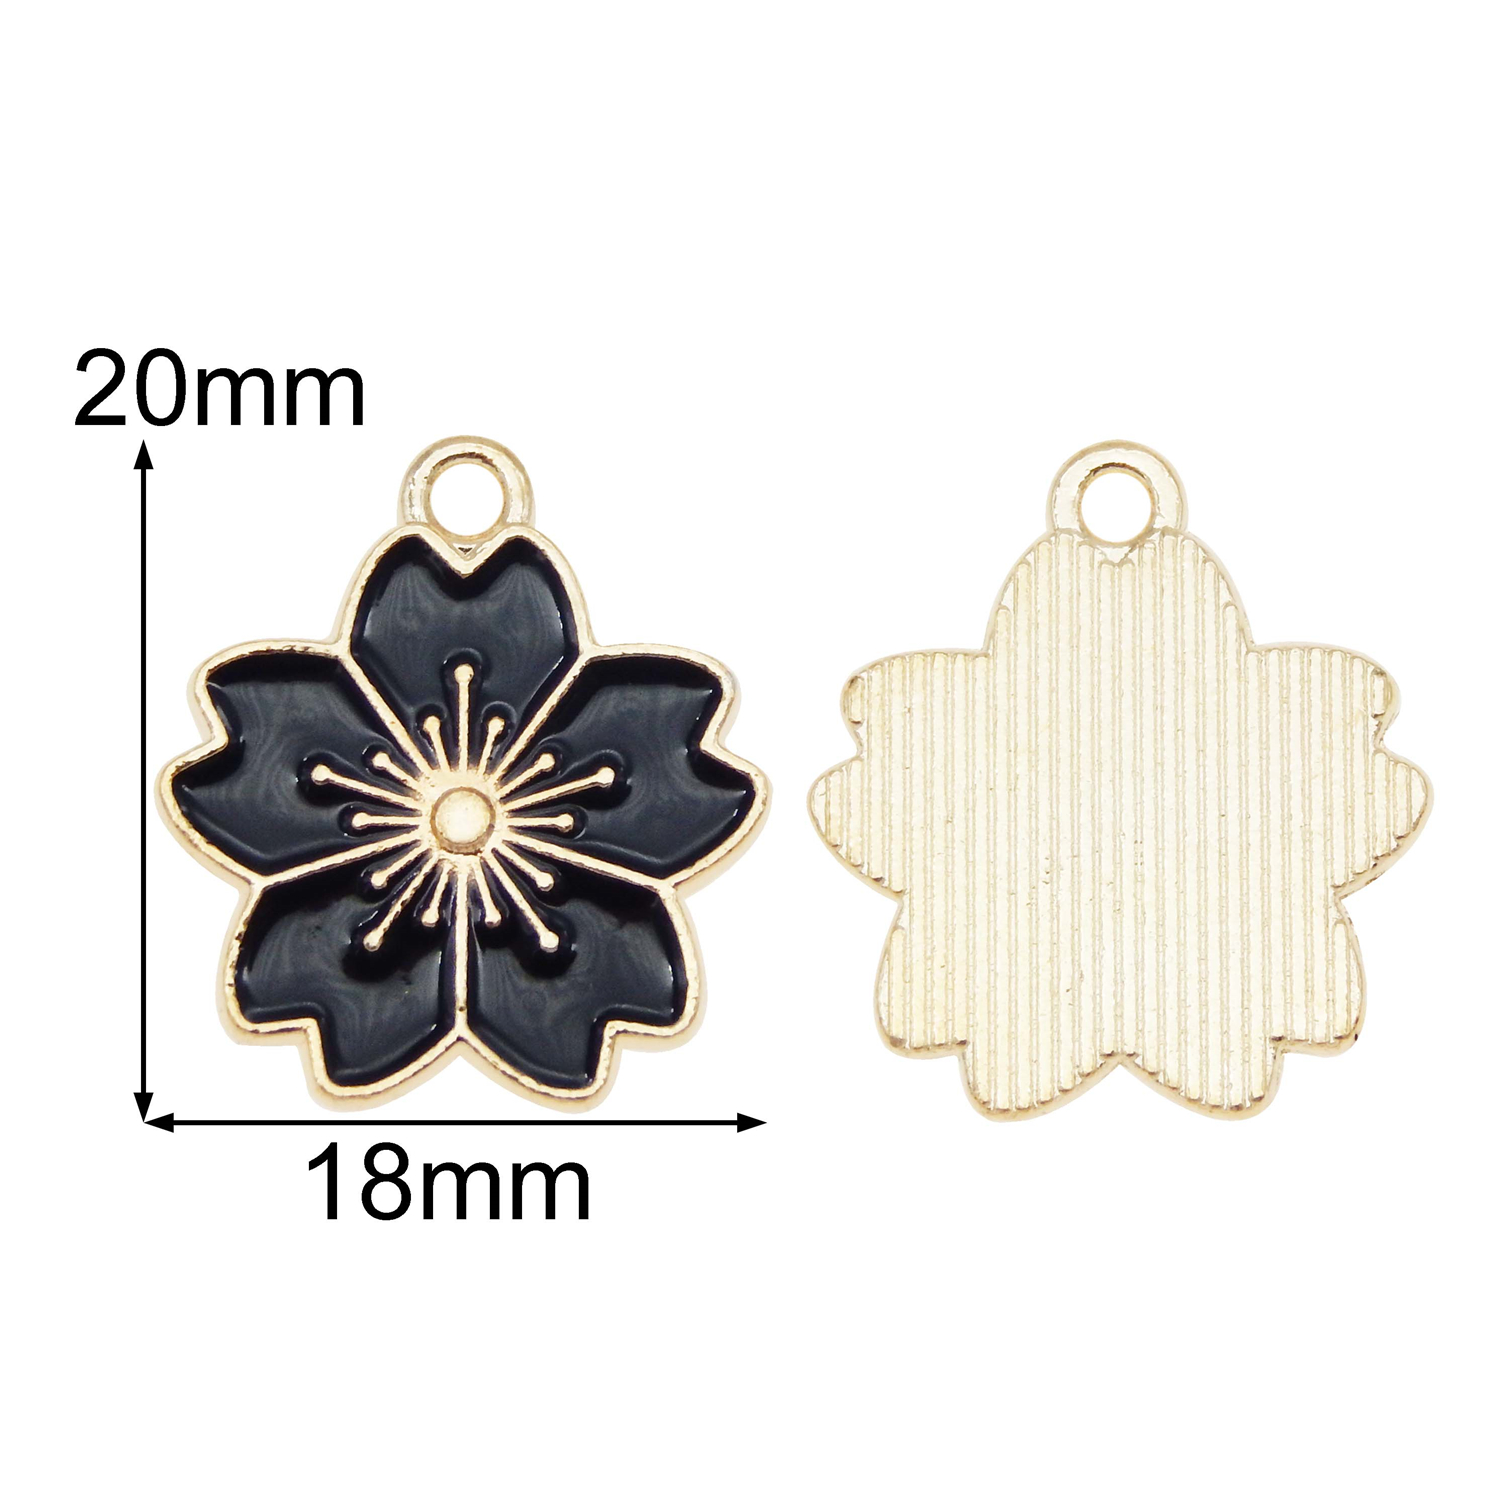 20pcs Mixed Colors Enamel Cherry Blossom Pendant Charms DIY Findings Accessories